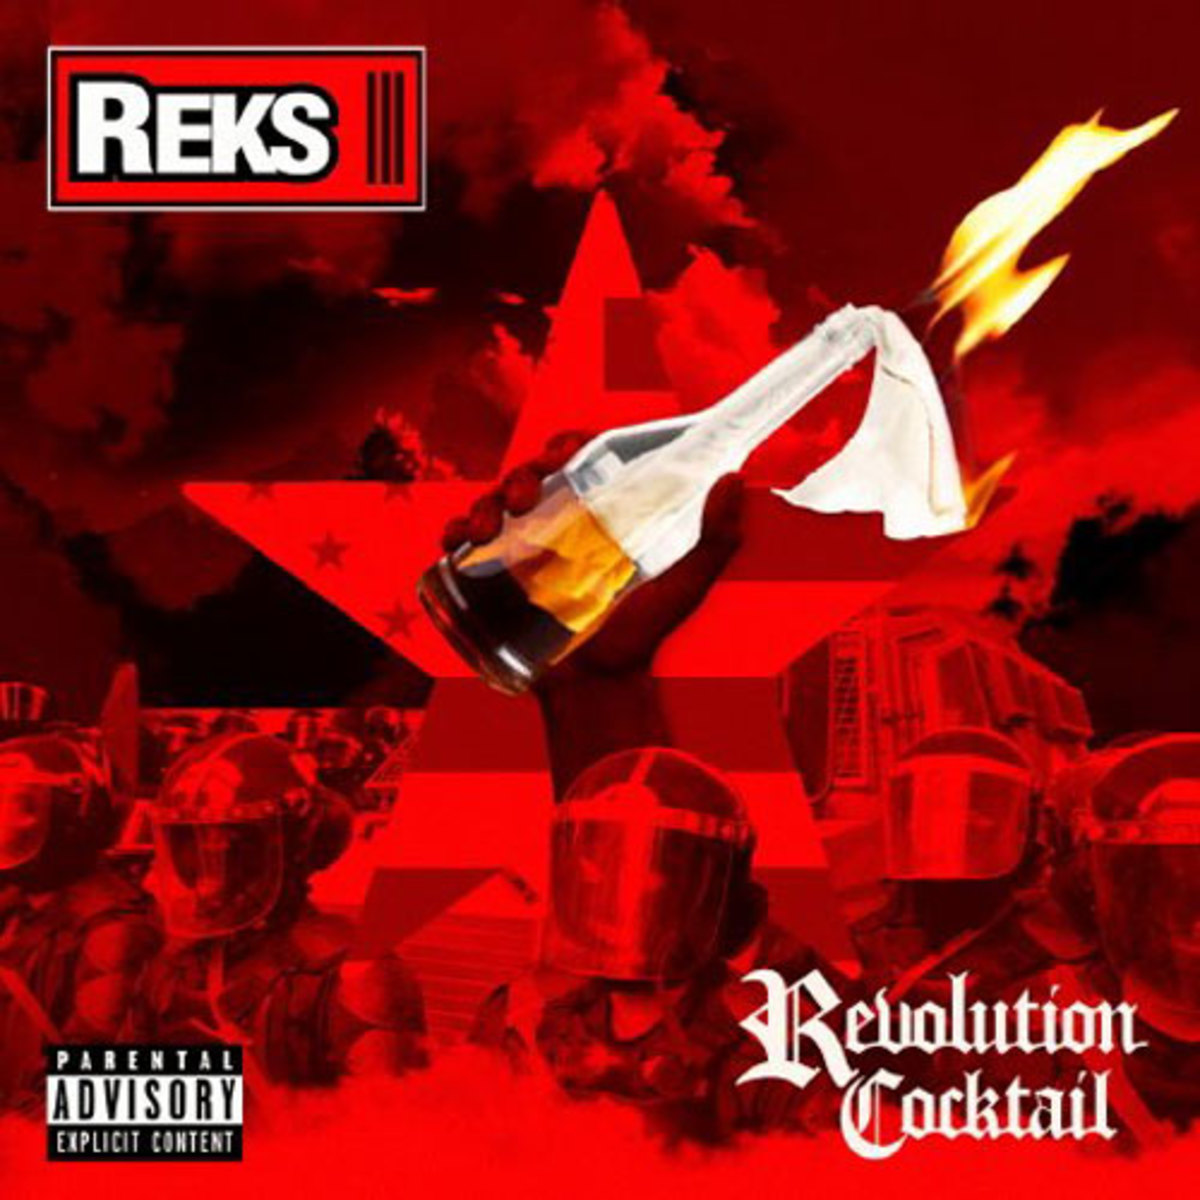 reks-revolutioncocktail.jpg